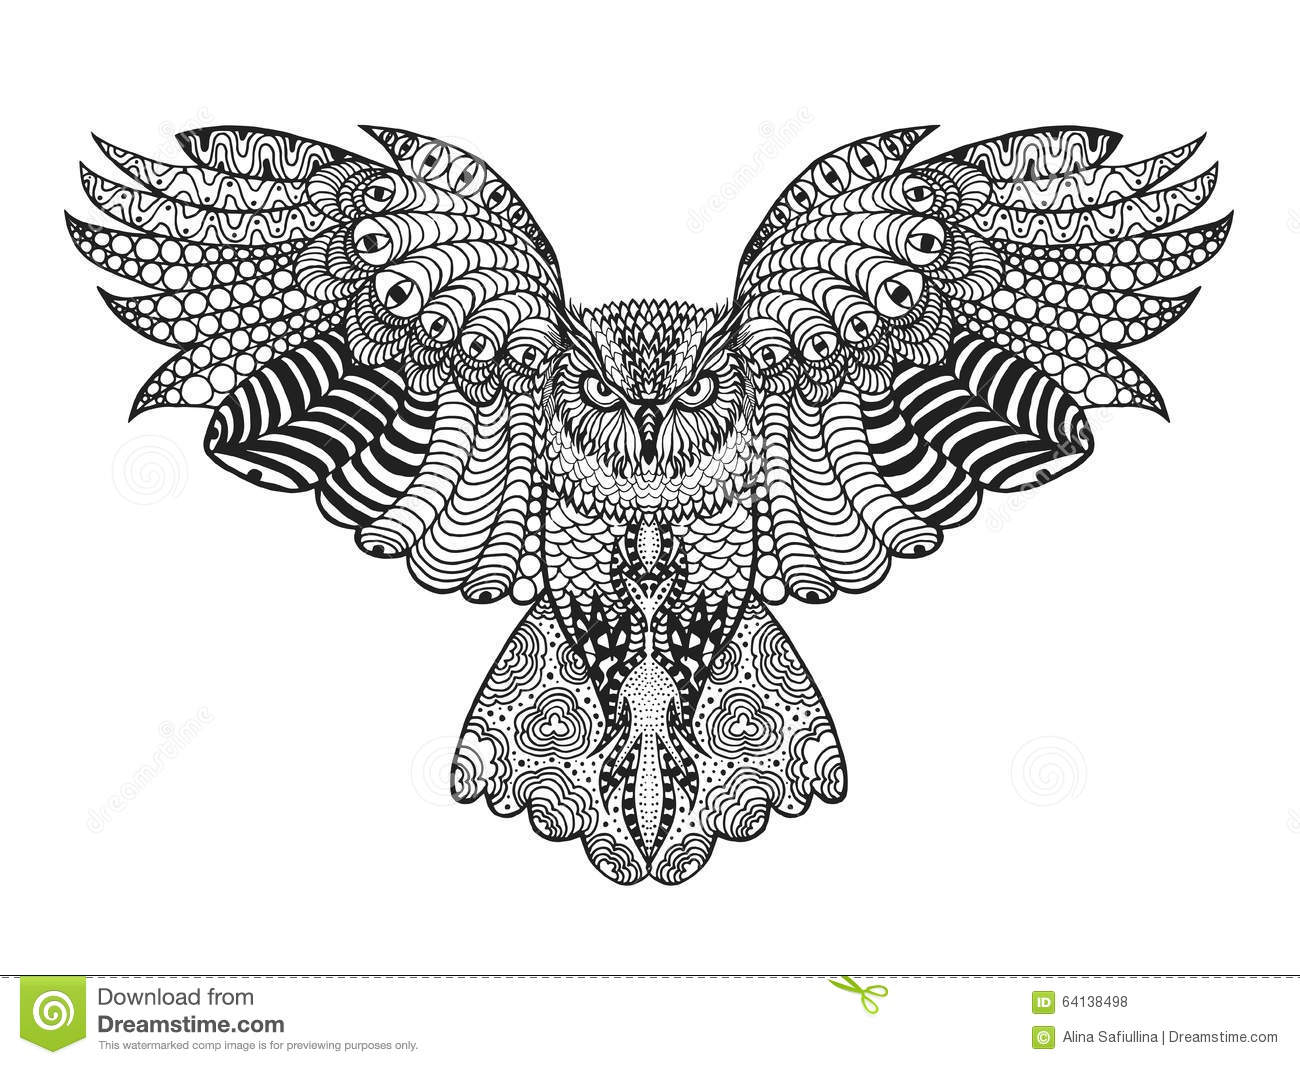 Eagle-owl coloring #7, Download drawings